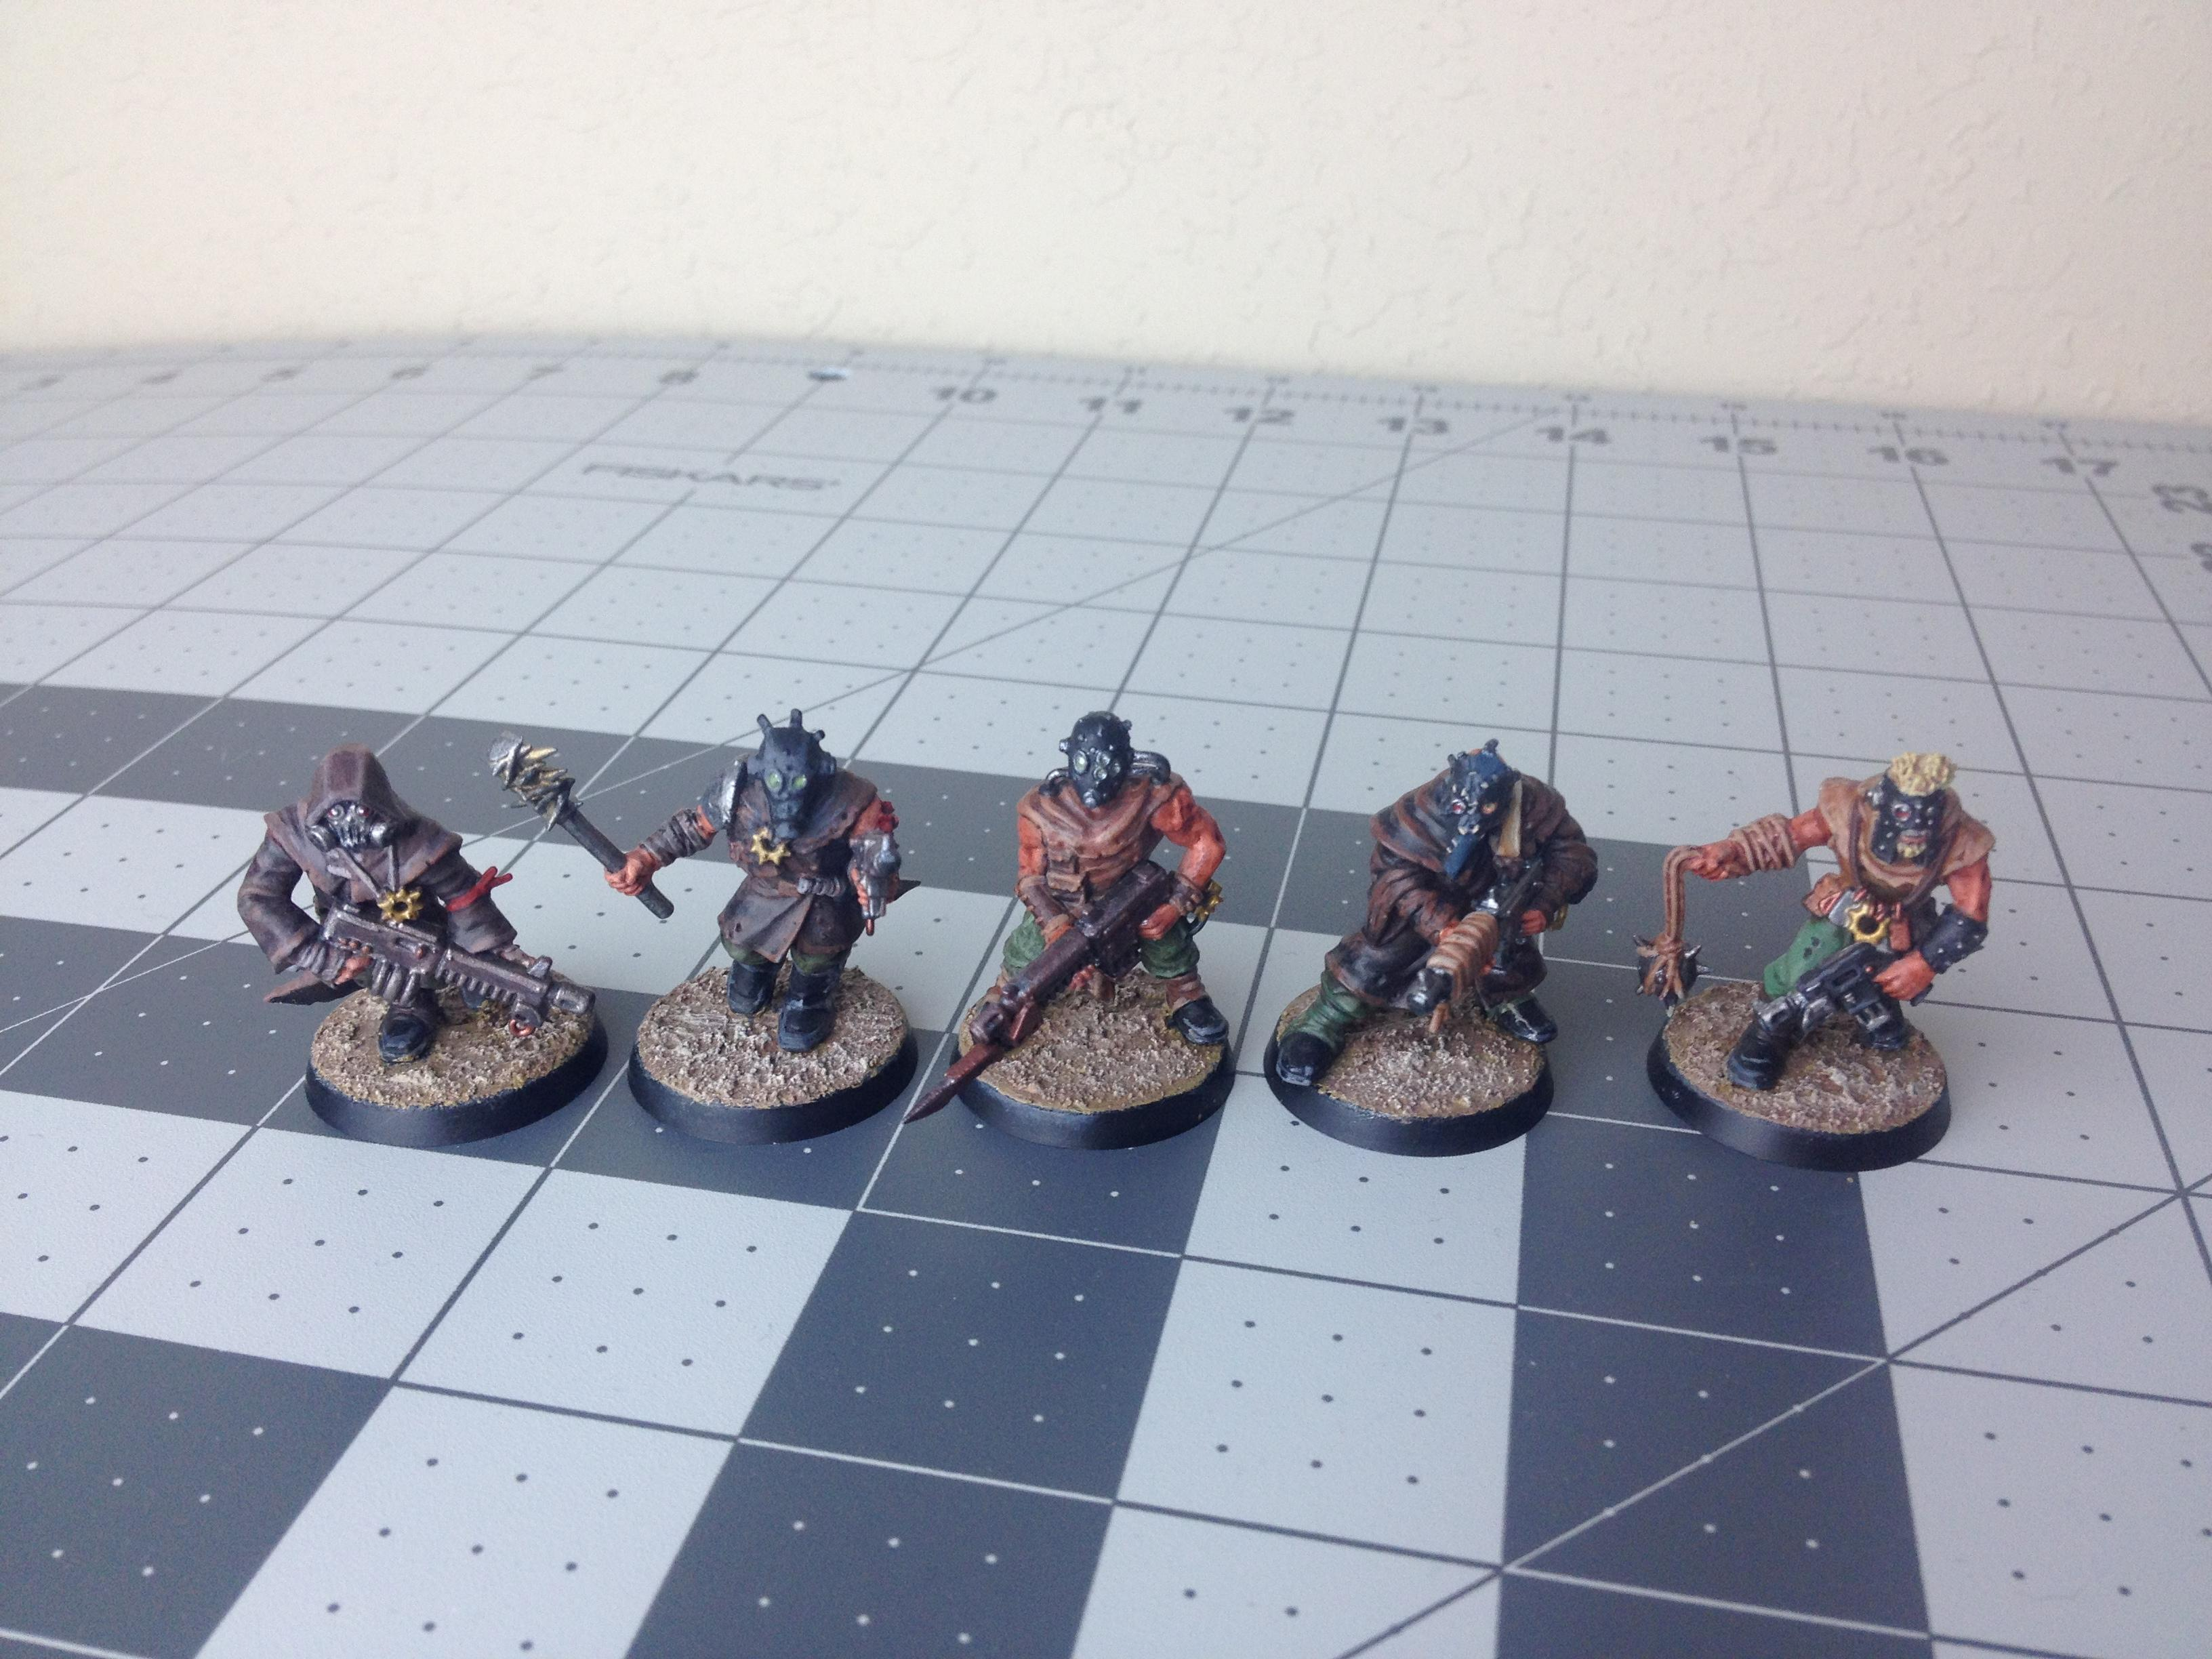 Based, Chaos, Cultists, Finished, Front, Warhammer 40,000